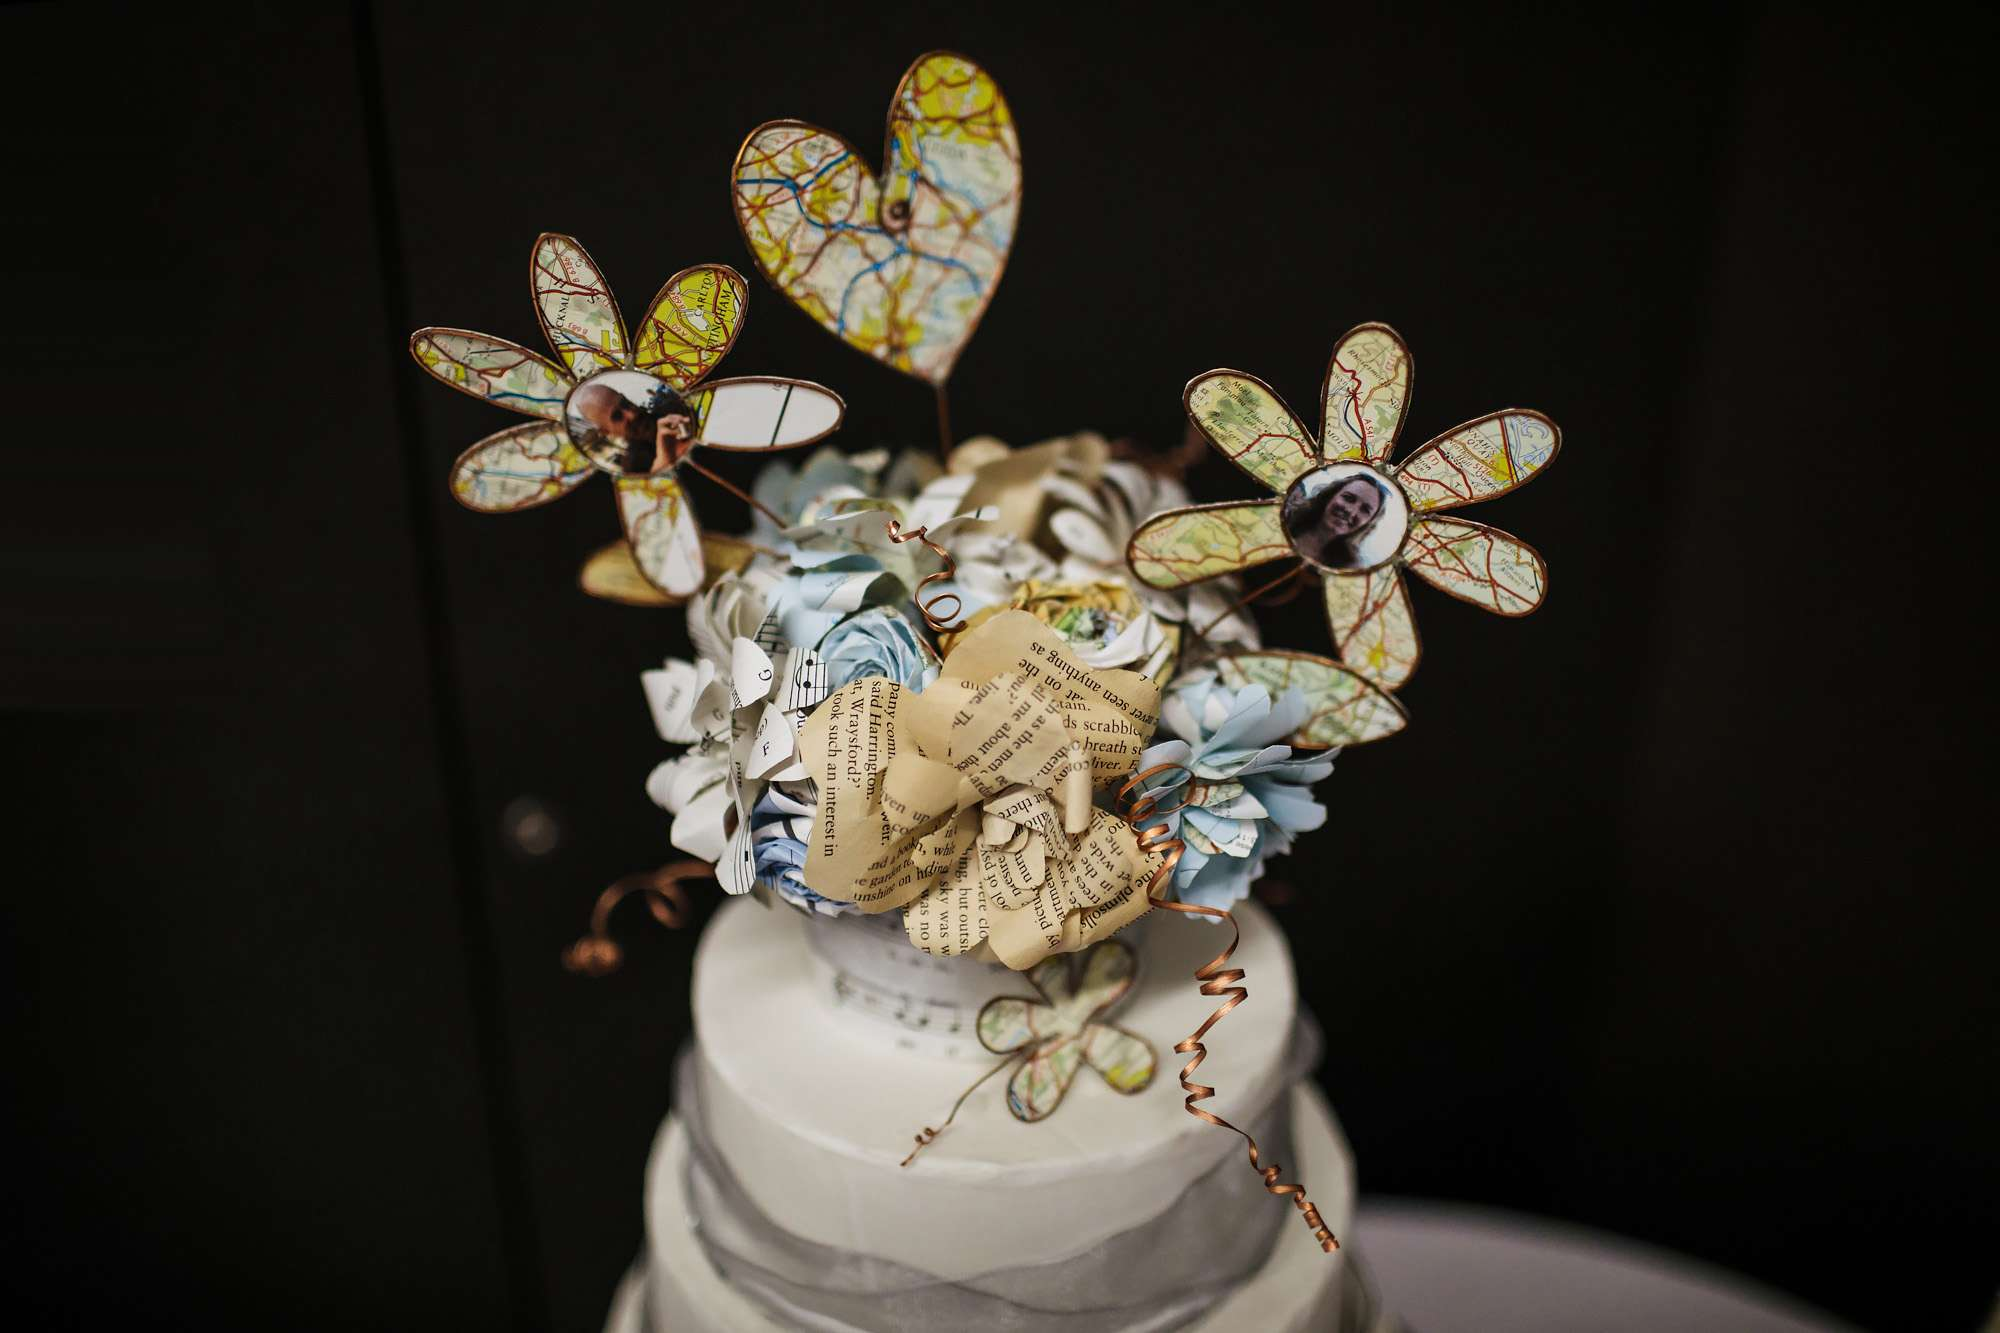 Close up shot of a wedding cake decorations